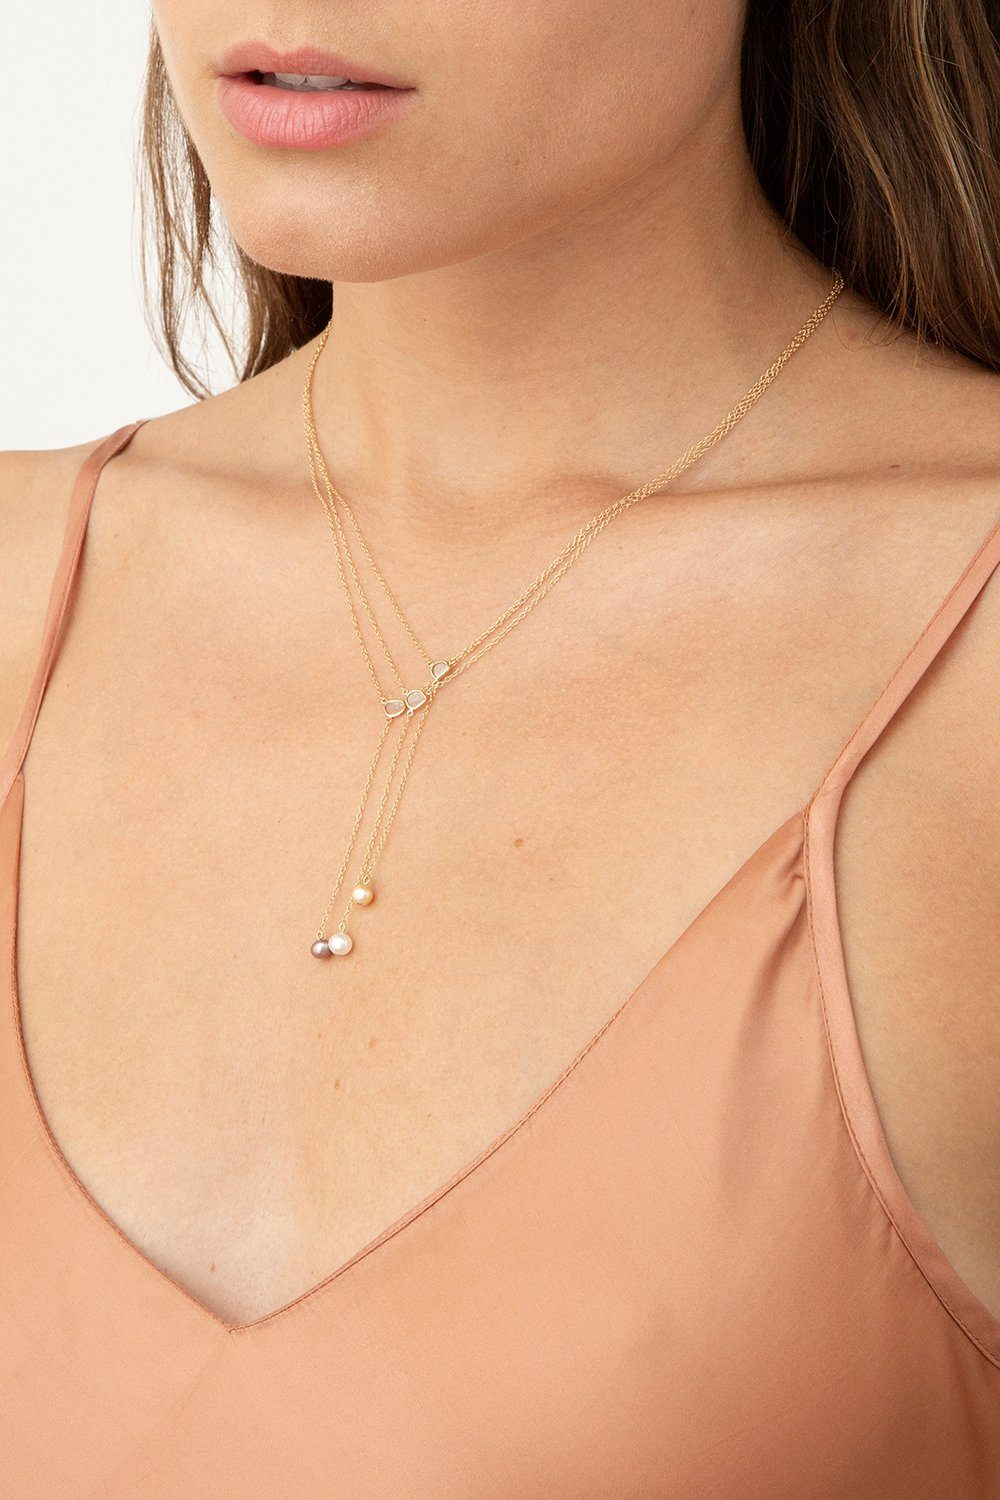 Sliced Champagne Diamond and Taupe Pearl Y Necklace